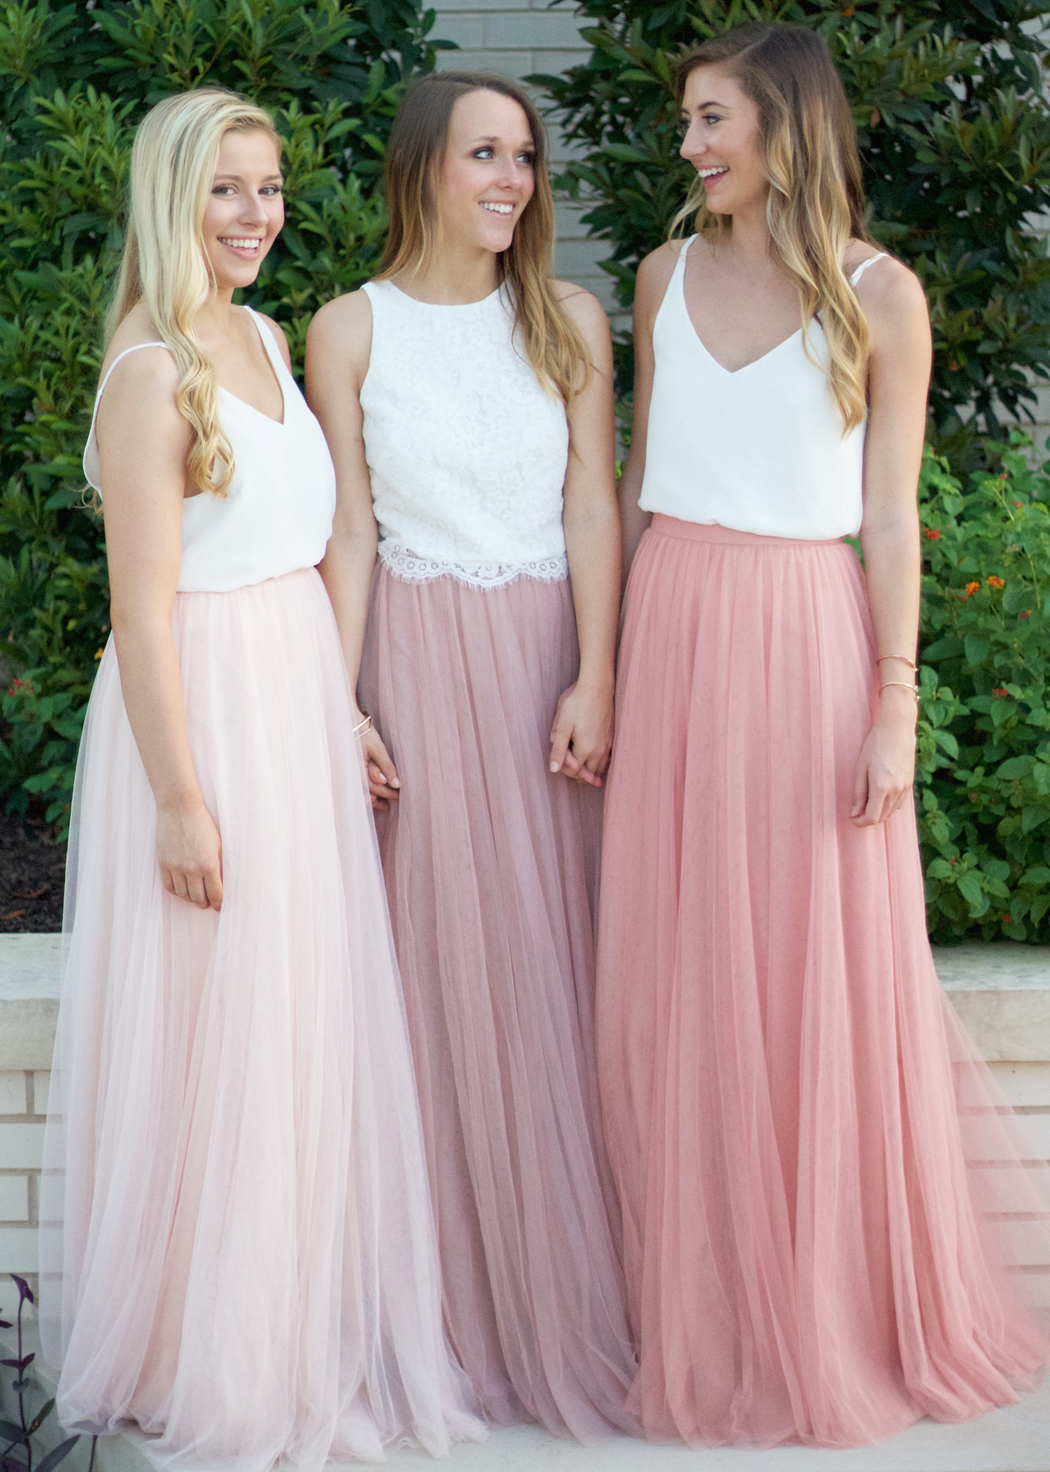 Fall color crush blush grey grey bridesmaid dresses gray designer quality tulle bridesmaids skirts by revelry are only 125 they come in over 30 ombrellifo Image collections